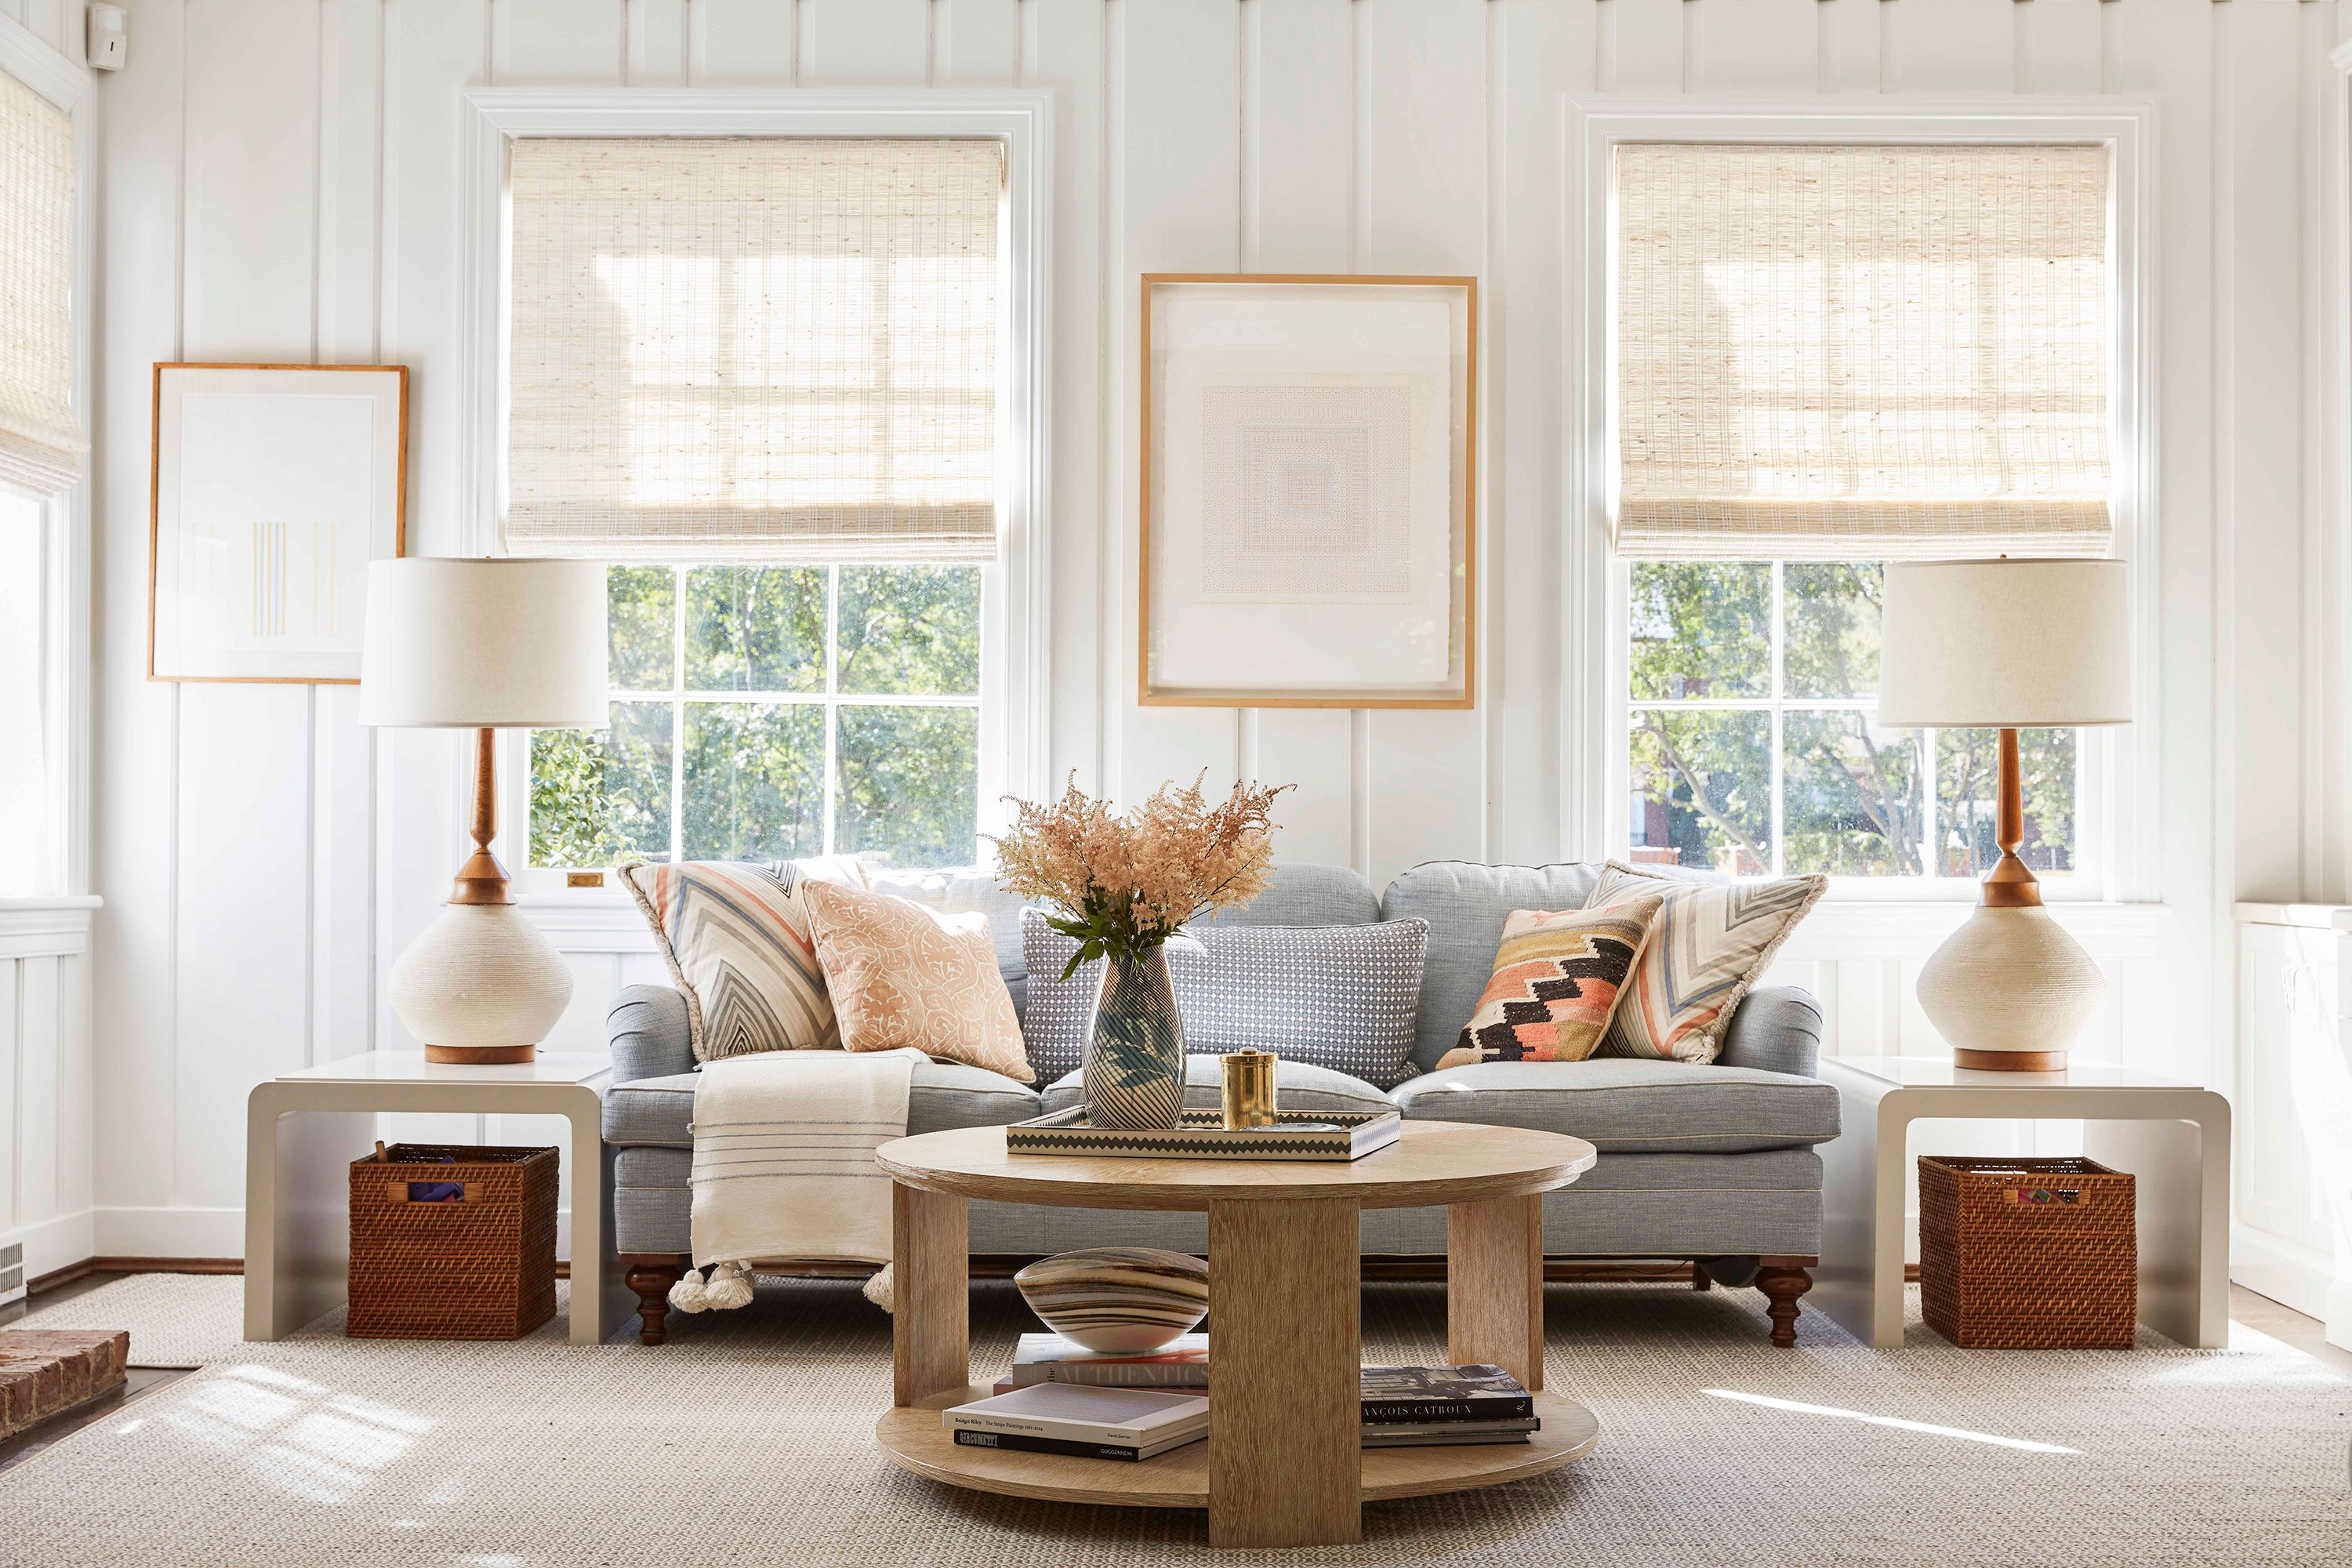 Small Living Room ideas –   Utilize the space